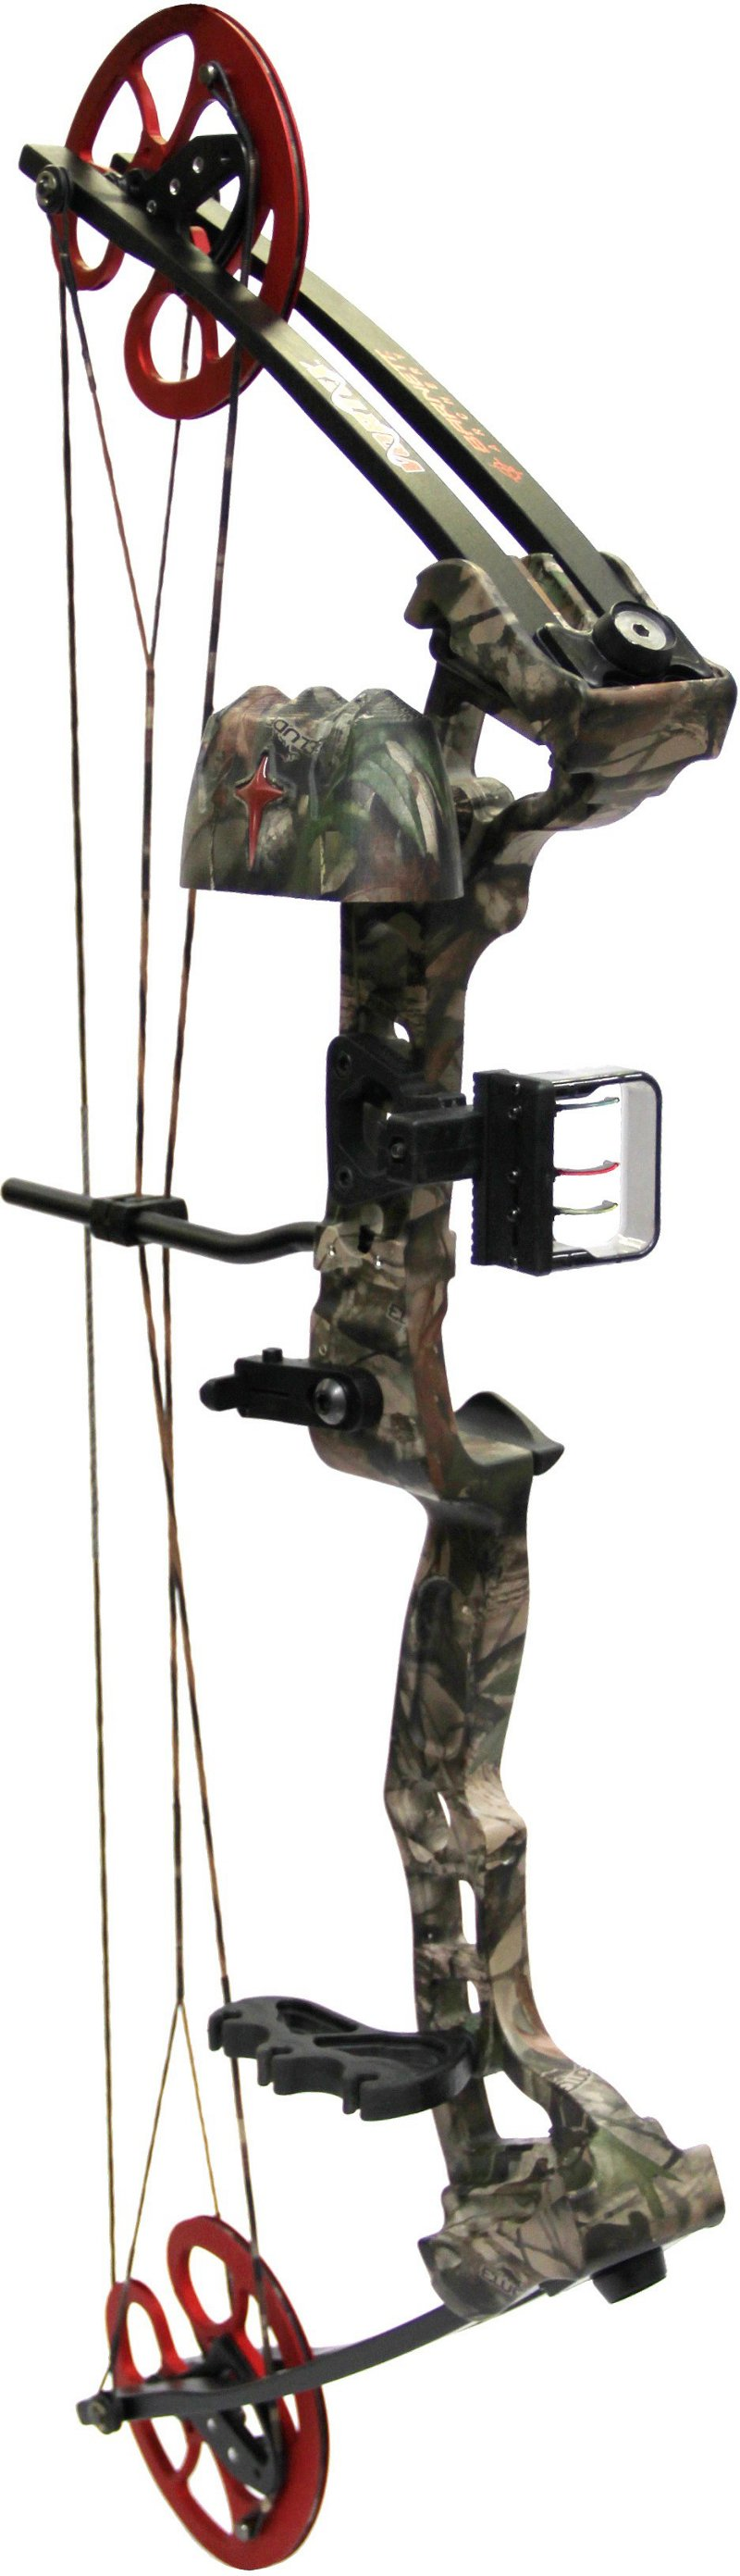 Barnett Vortex Hunter Adjustable Compound Bow - Archery, Bows And Cross Bows at Academy Sports thumbnail